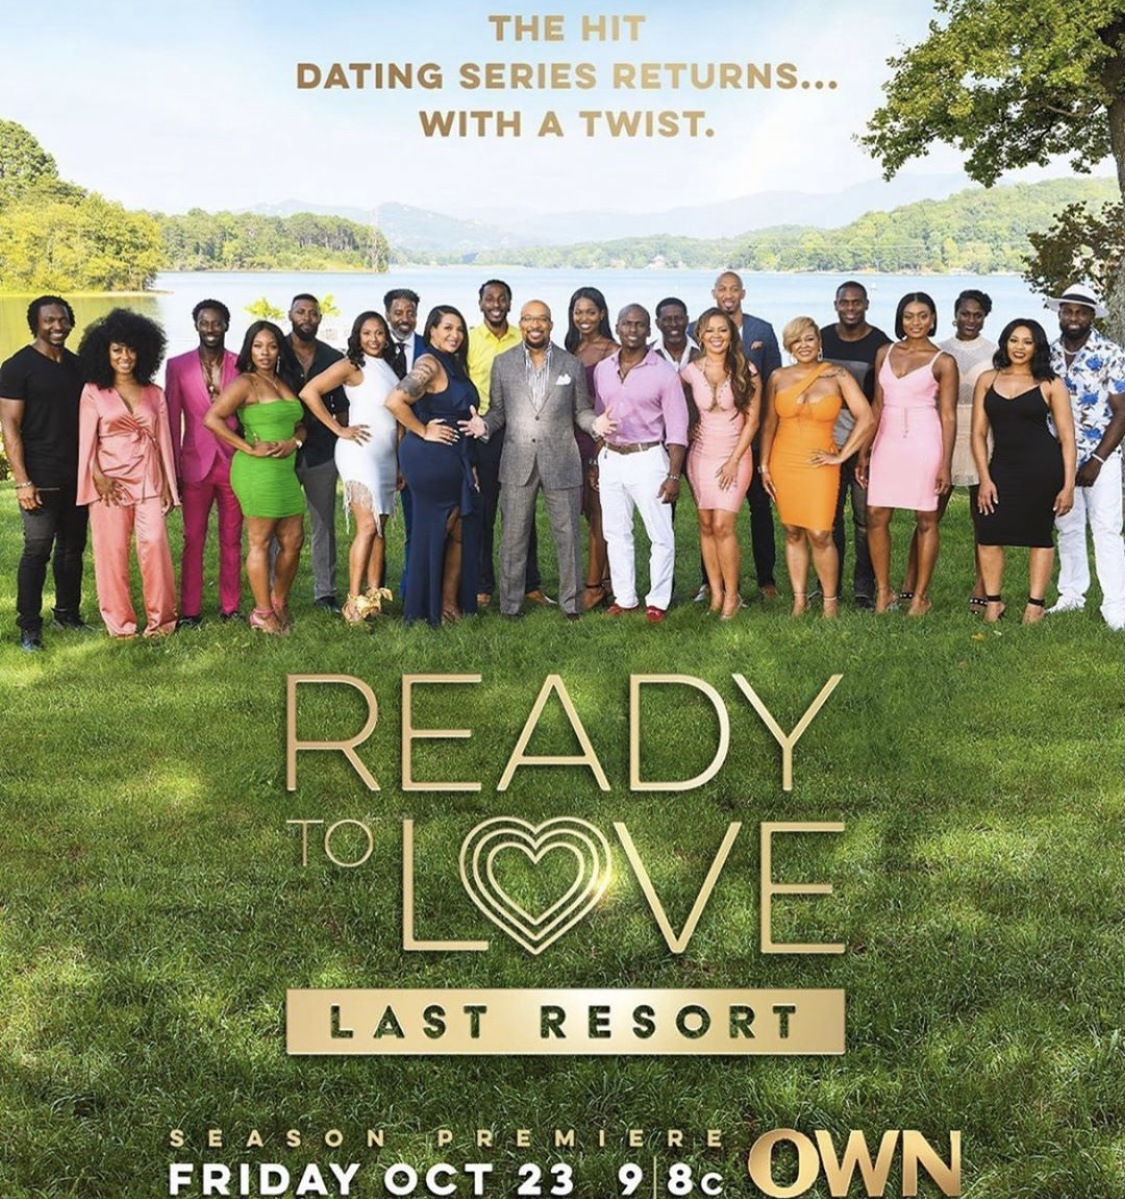 New Season of 'Ready to Love' with a Twist Coming To OWN